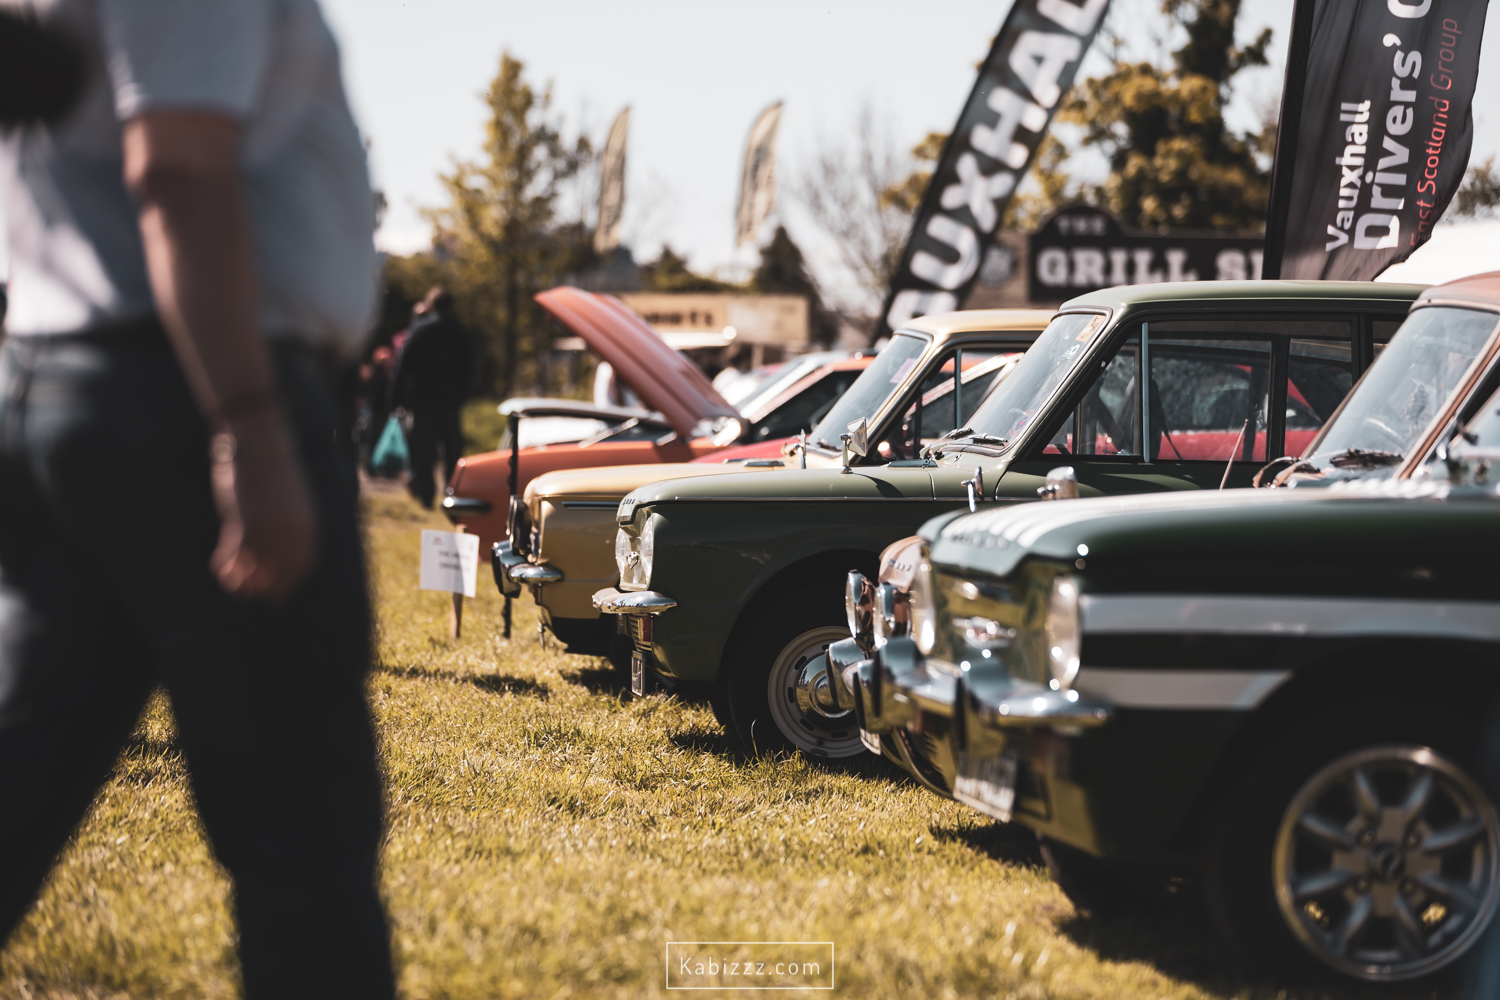 Kabizzz_Photography_Stirling_District_Classic _cars-36.jpg